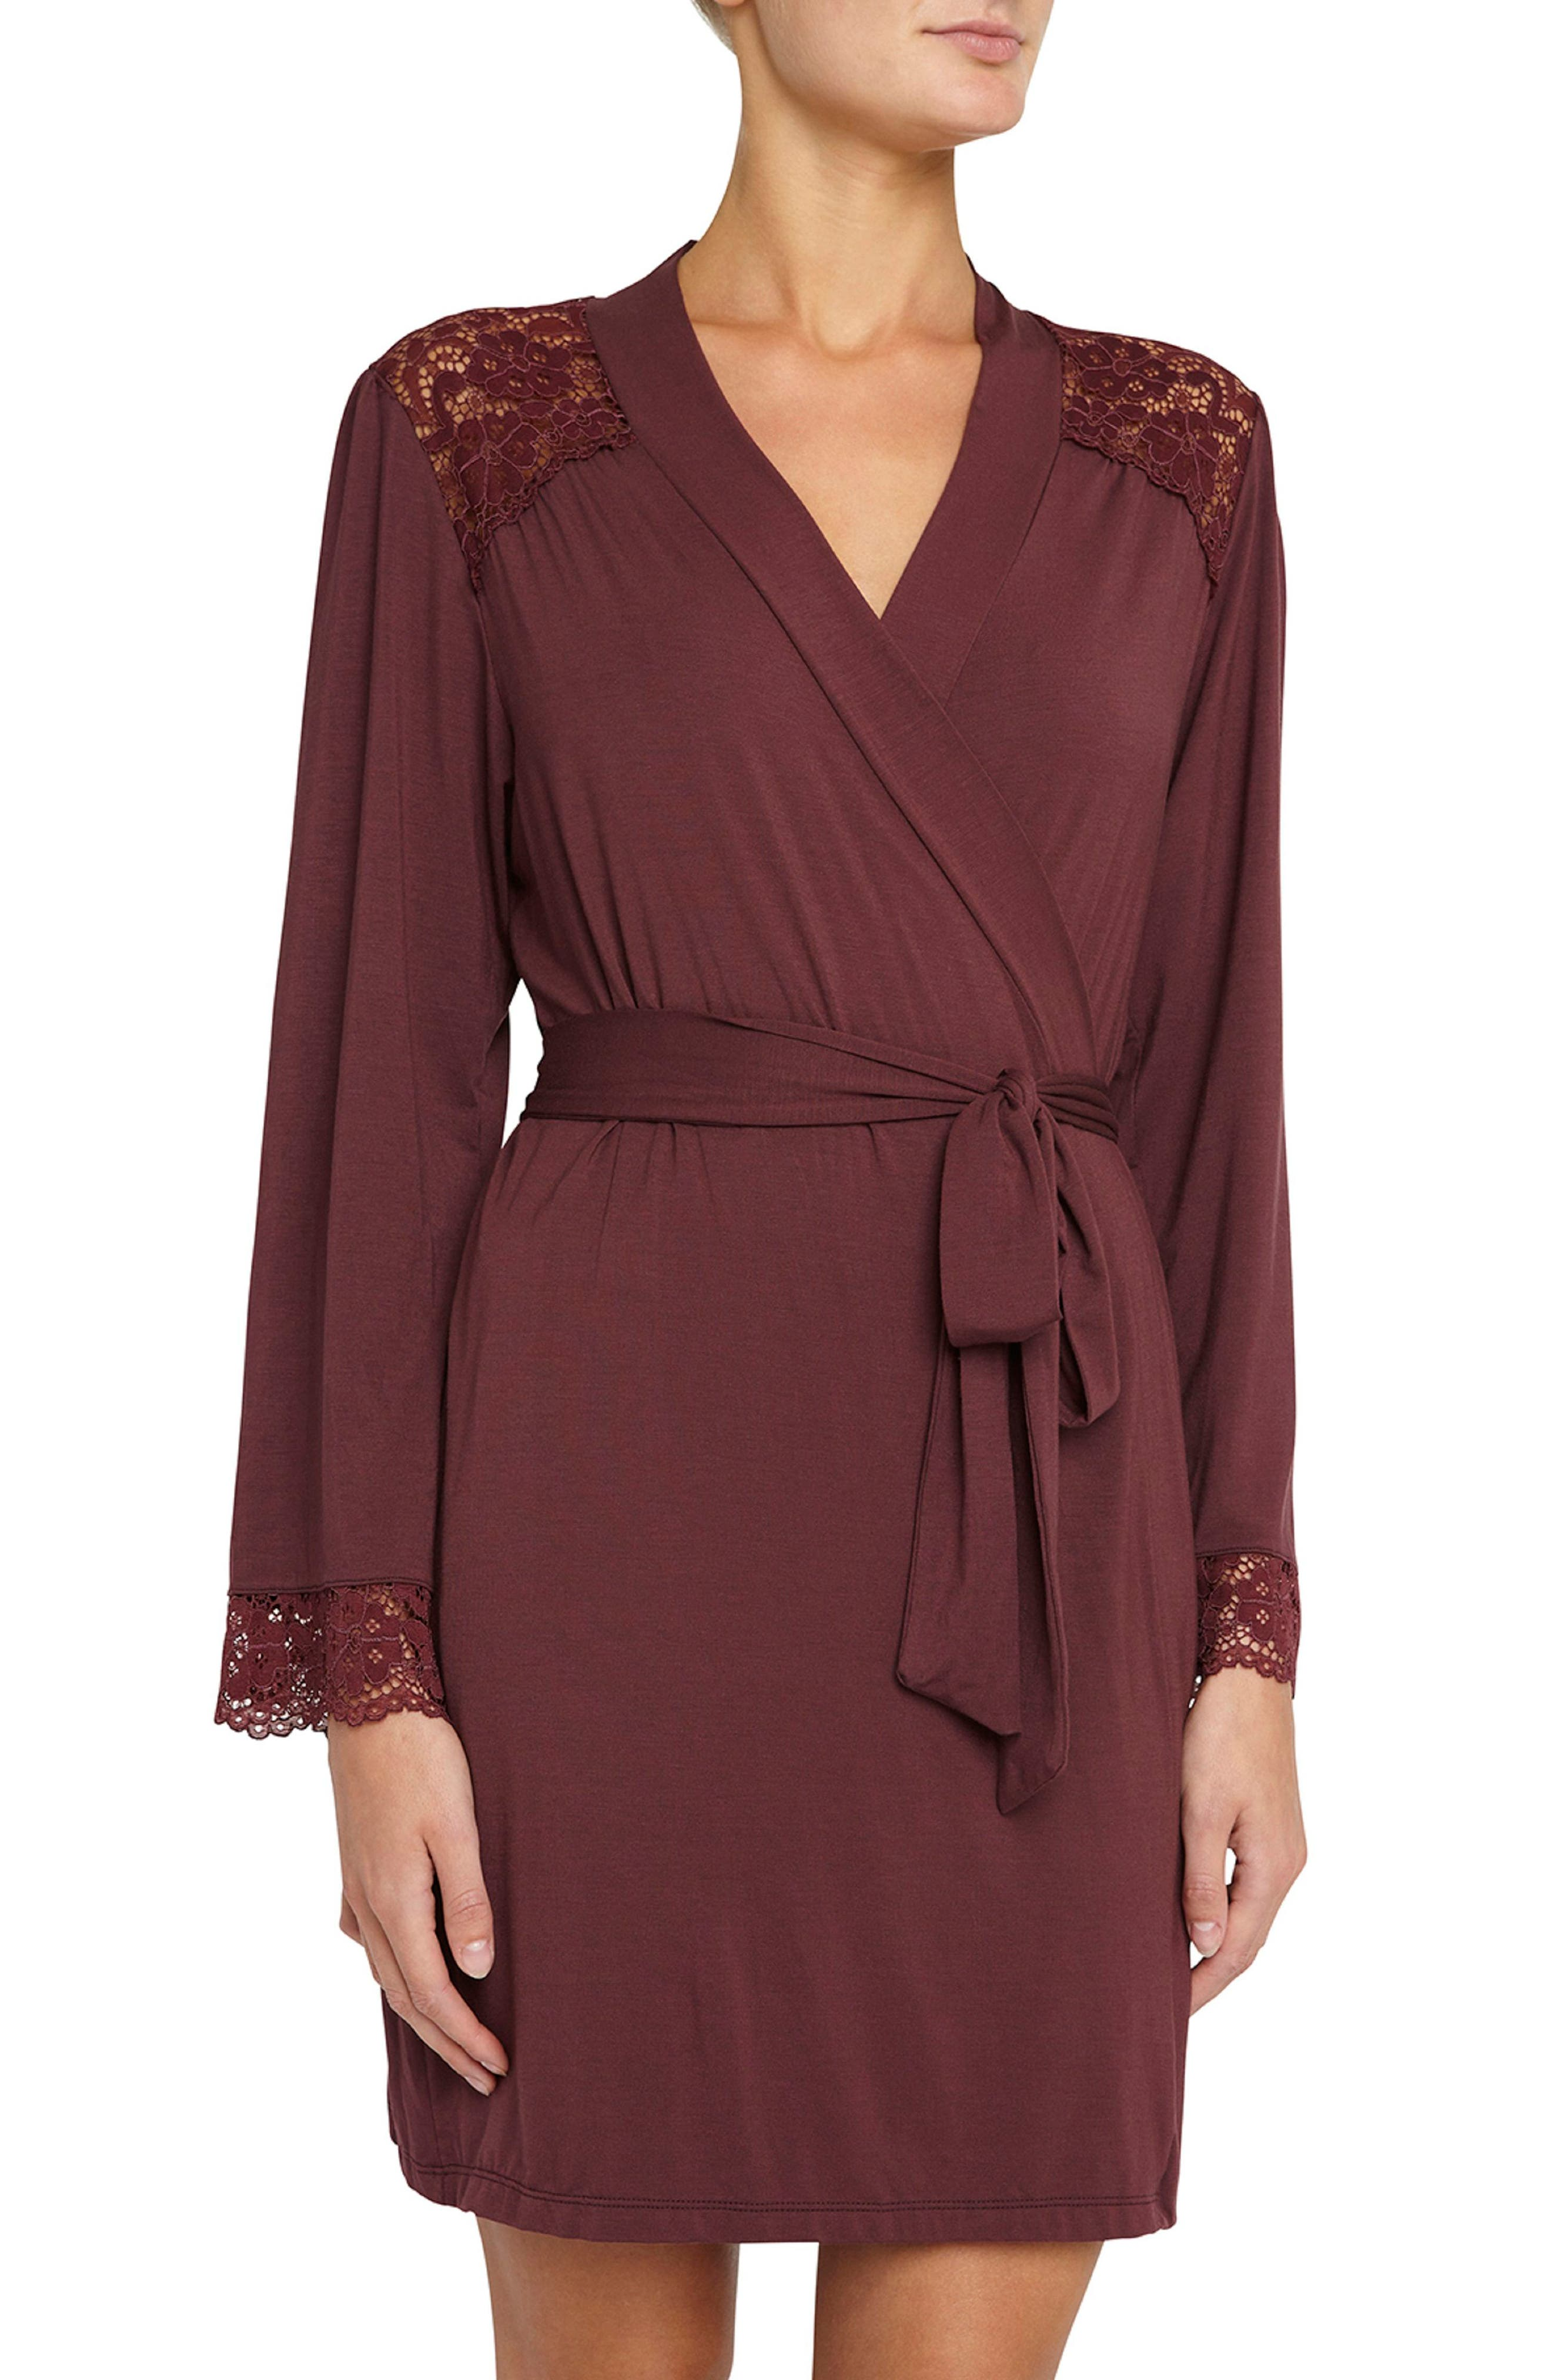 Vineland Wine Lila Short Robe,                             Main thumbnail 1, color,                             Vineyard Wine